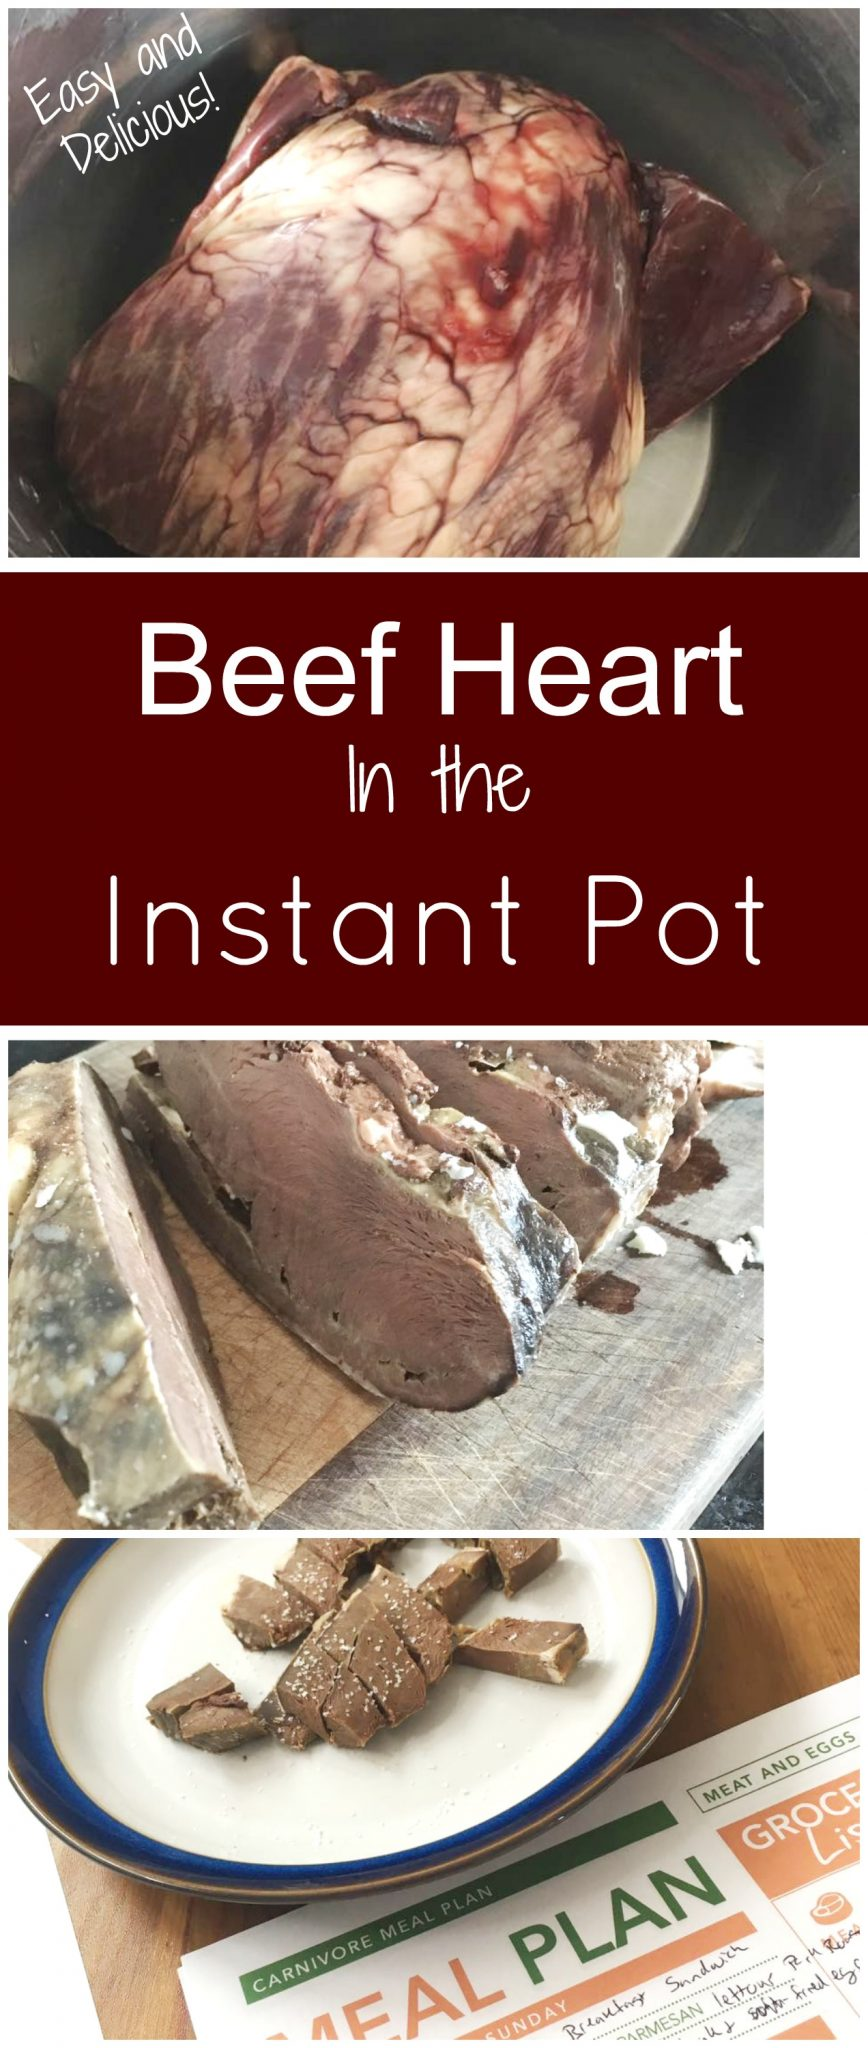 How To Cook Beef Heart In The Instant Pot Health Home